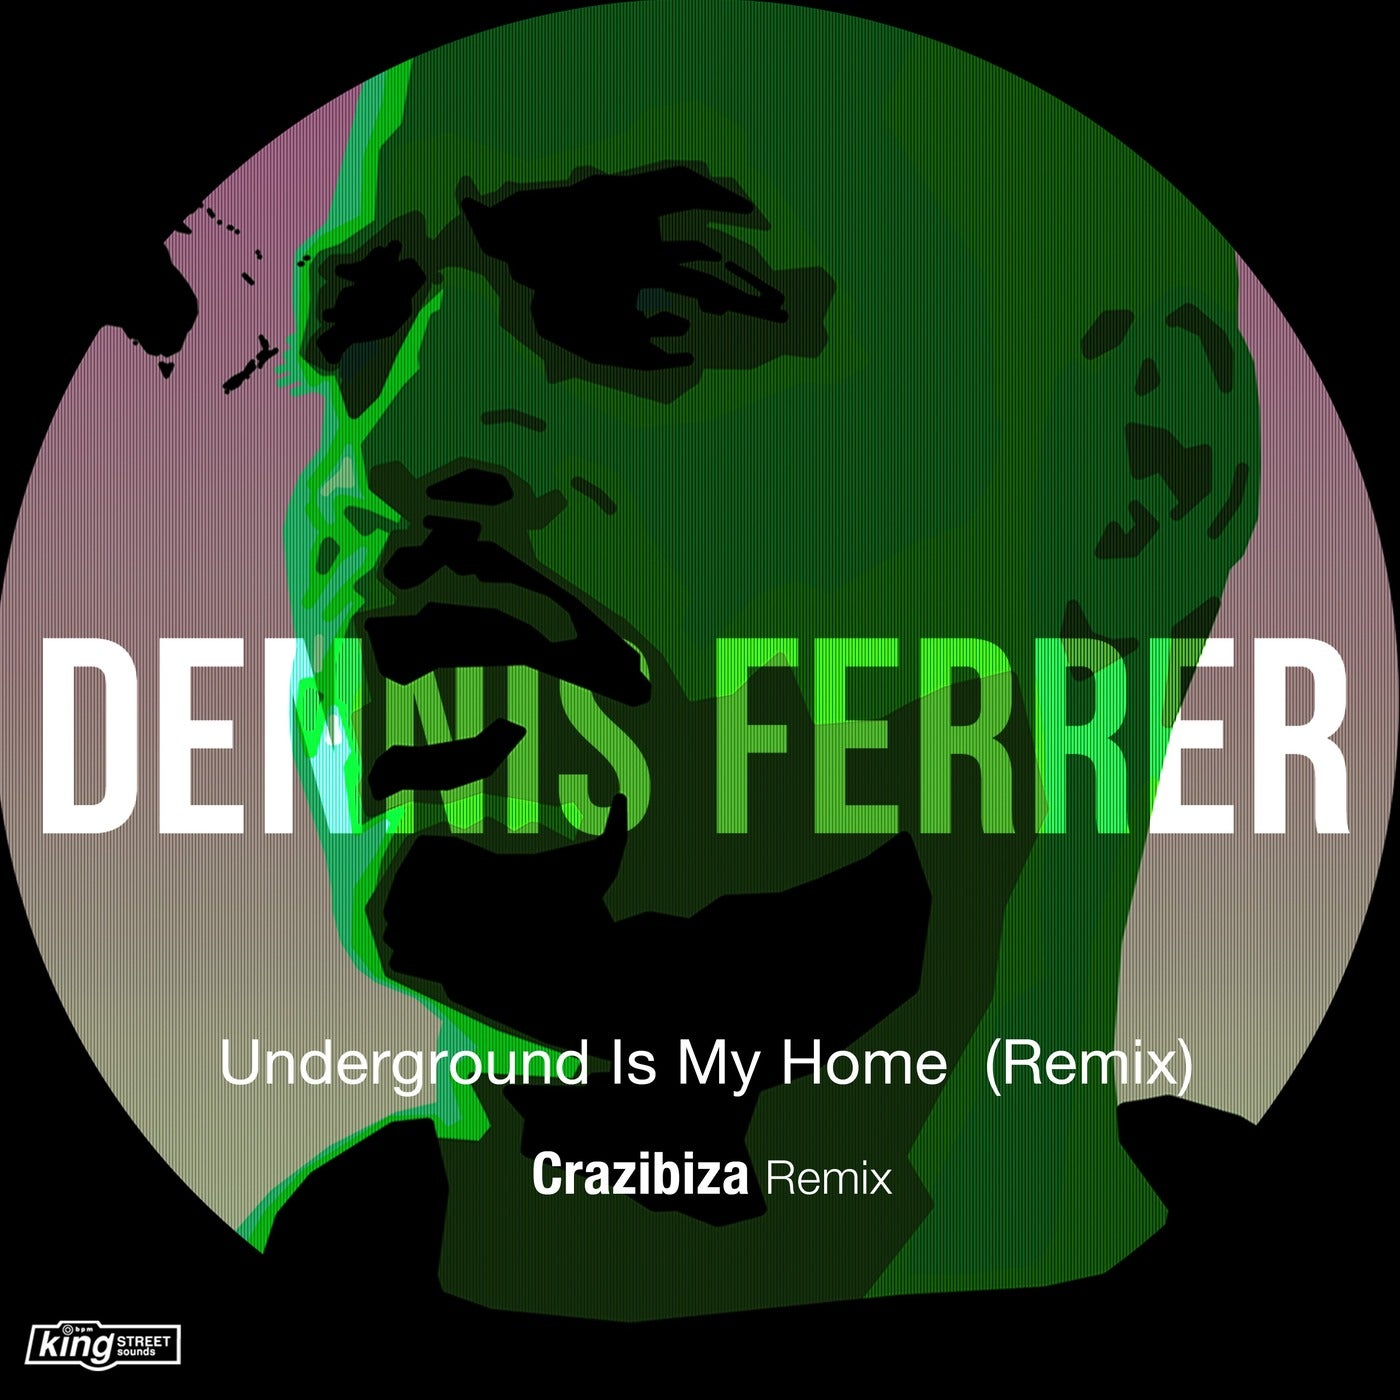 Download Underground Is My Home (Remix) on Electrobuzz